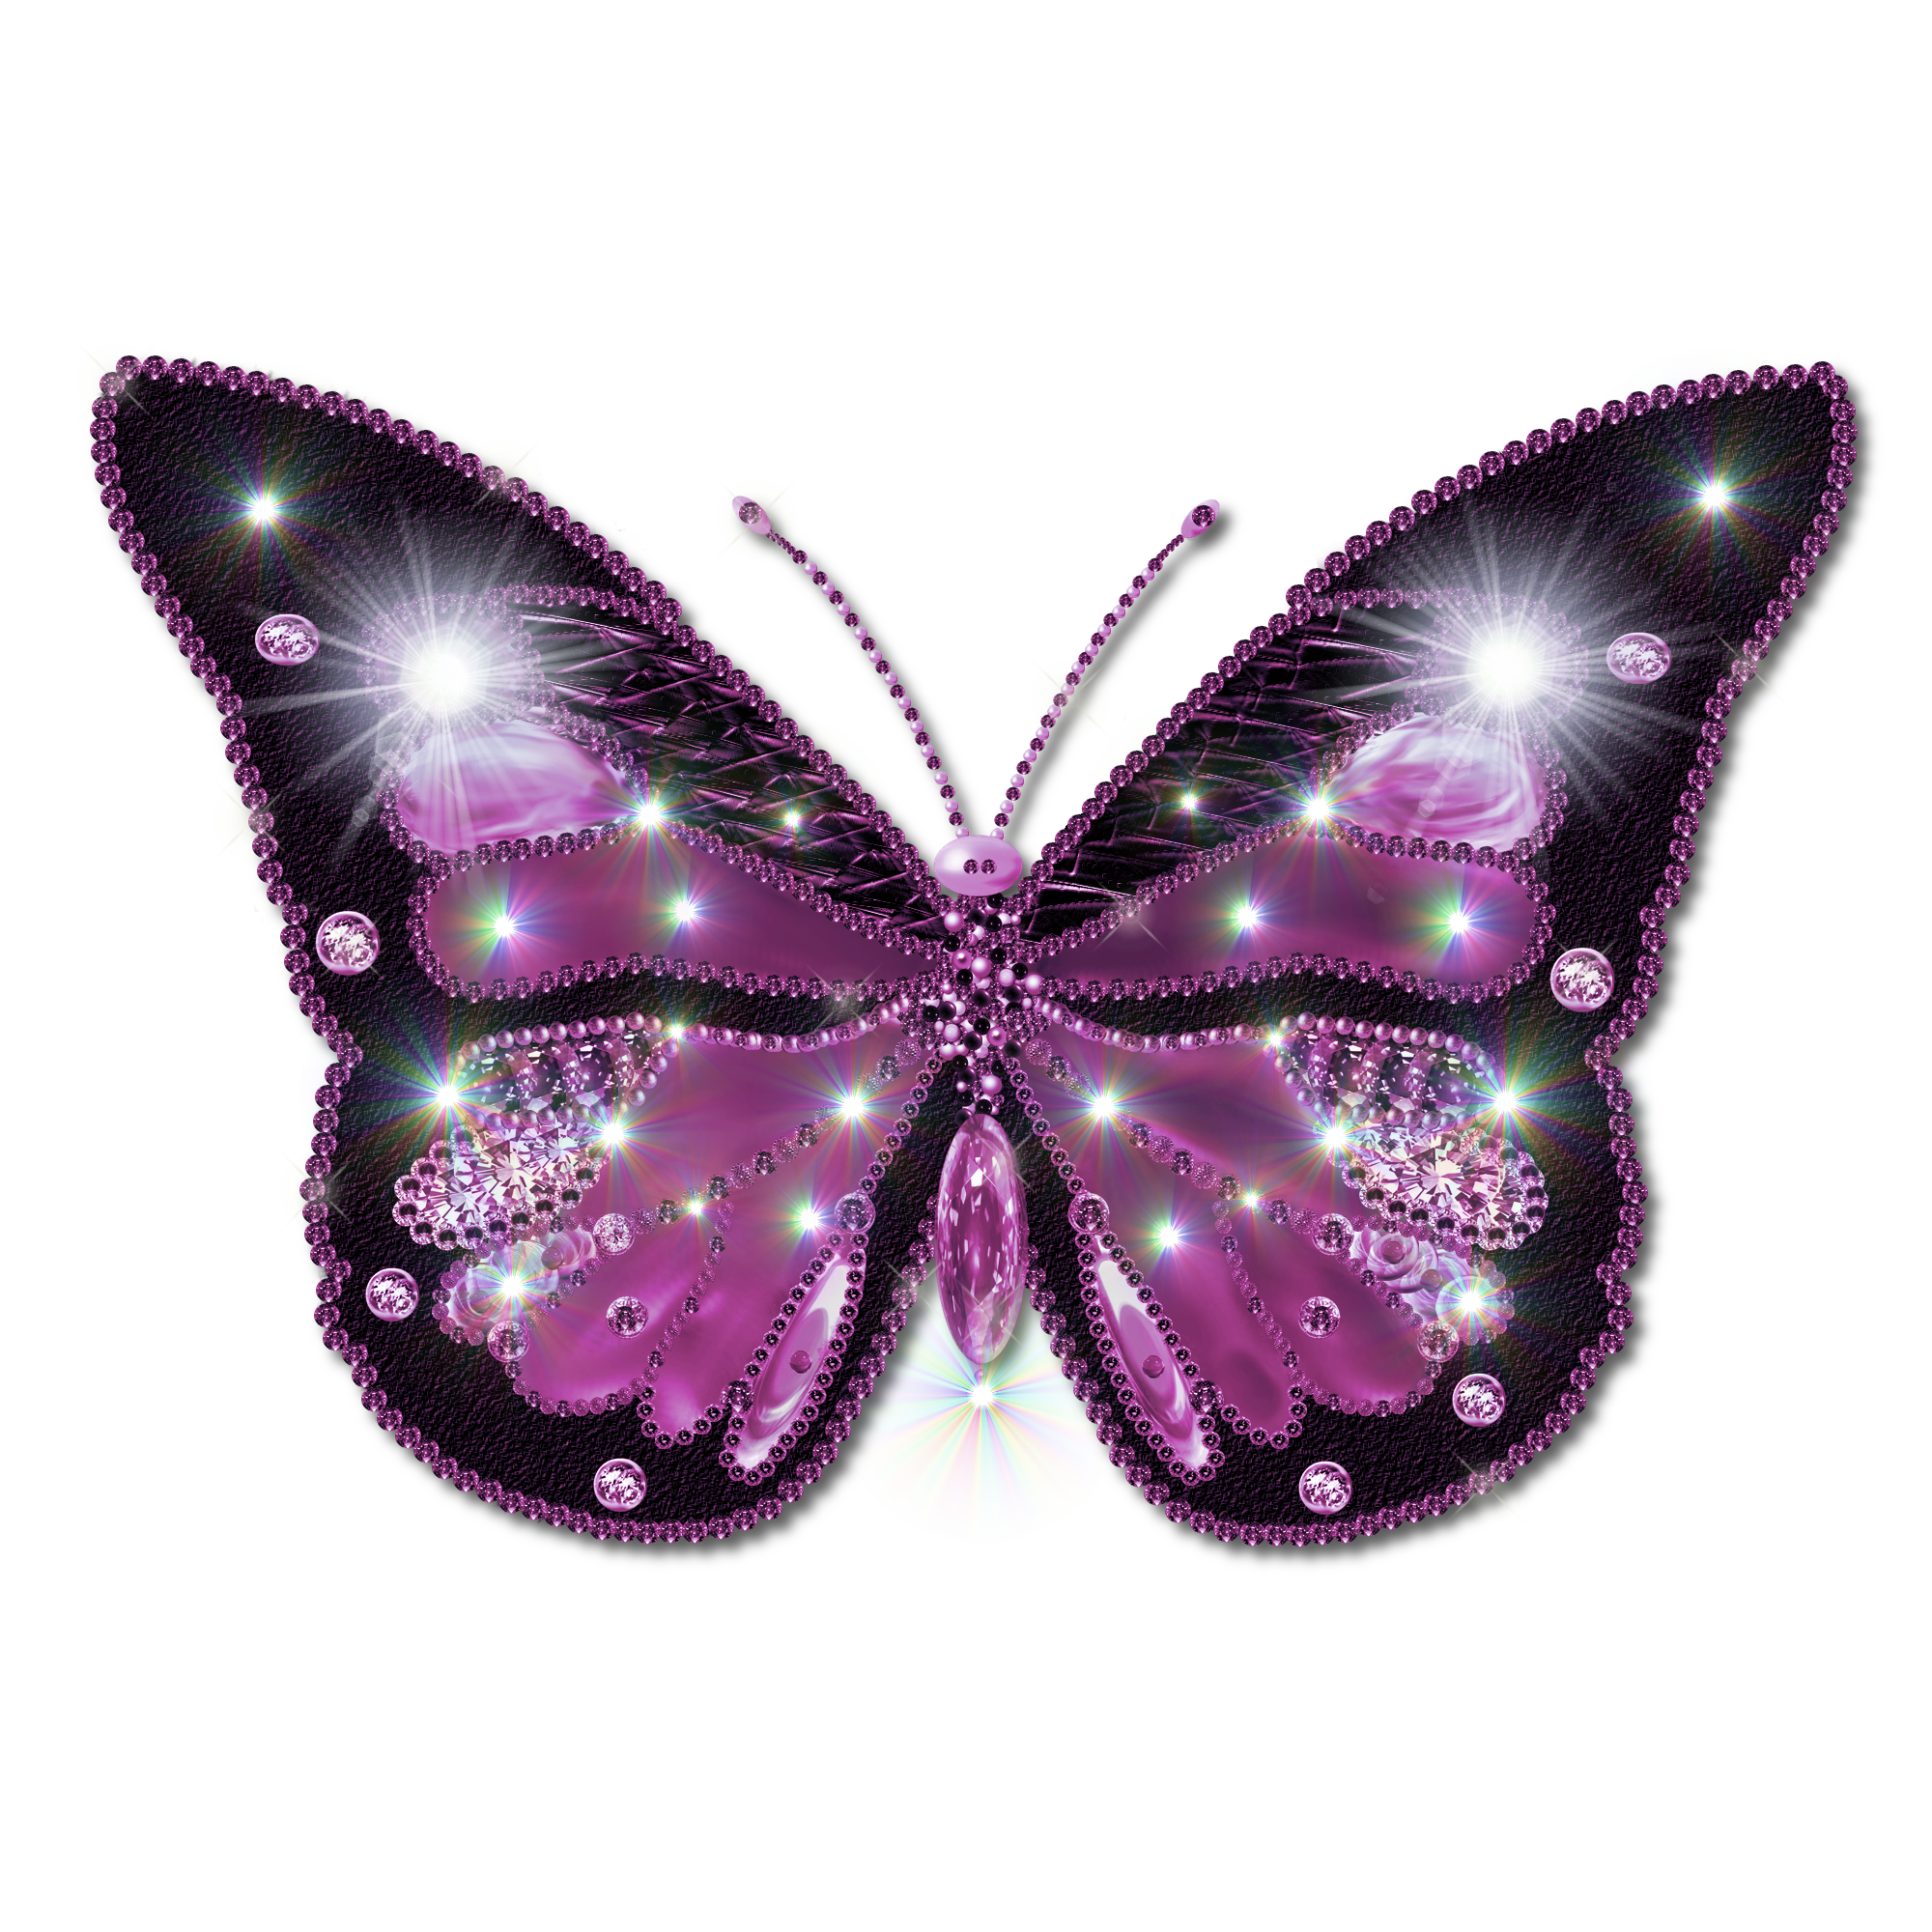 Butterfly PNG Image - Butterfly HD PNG